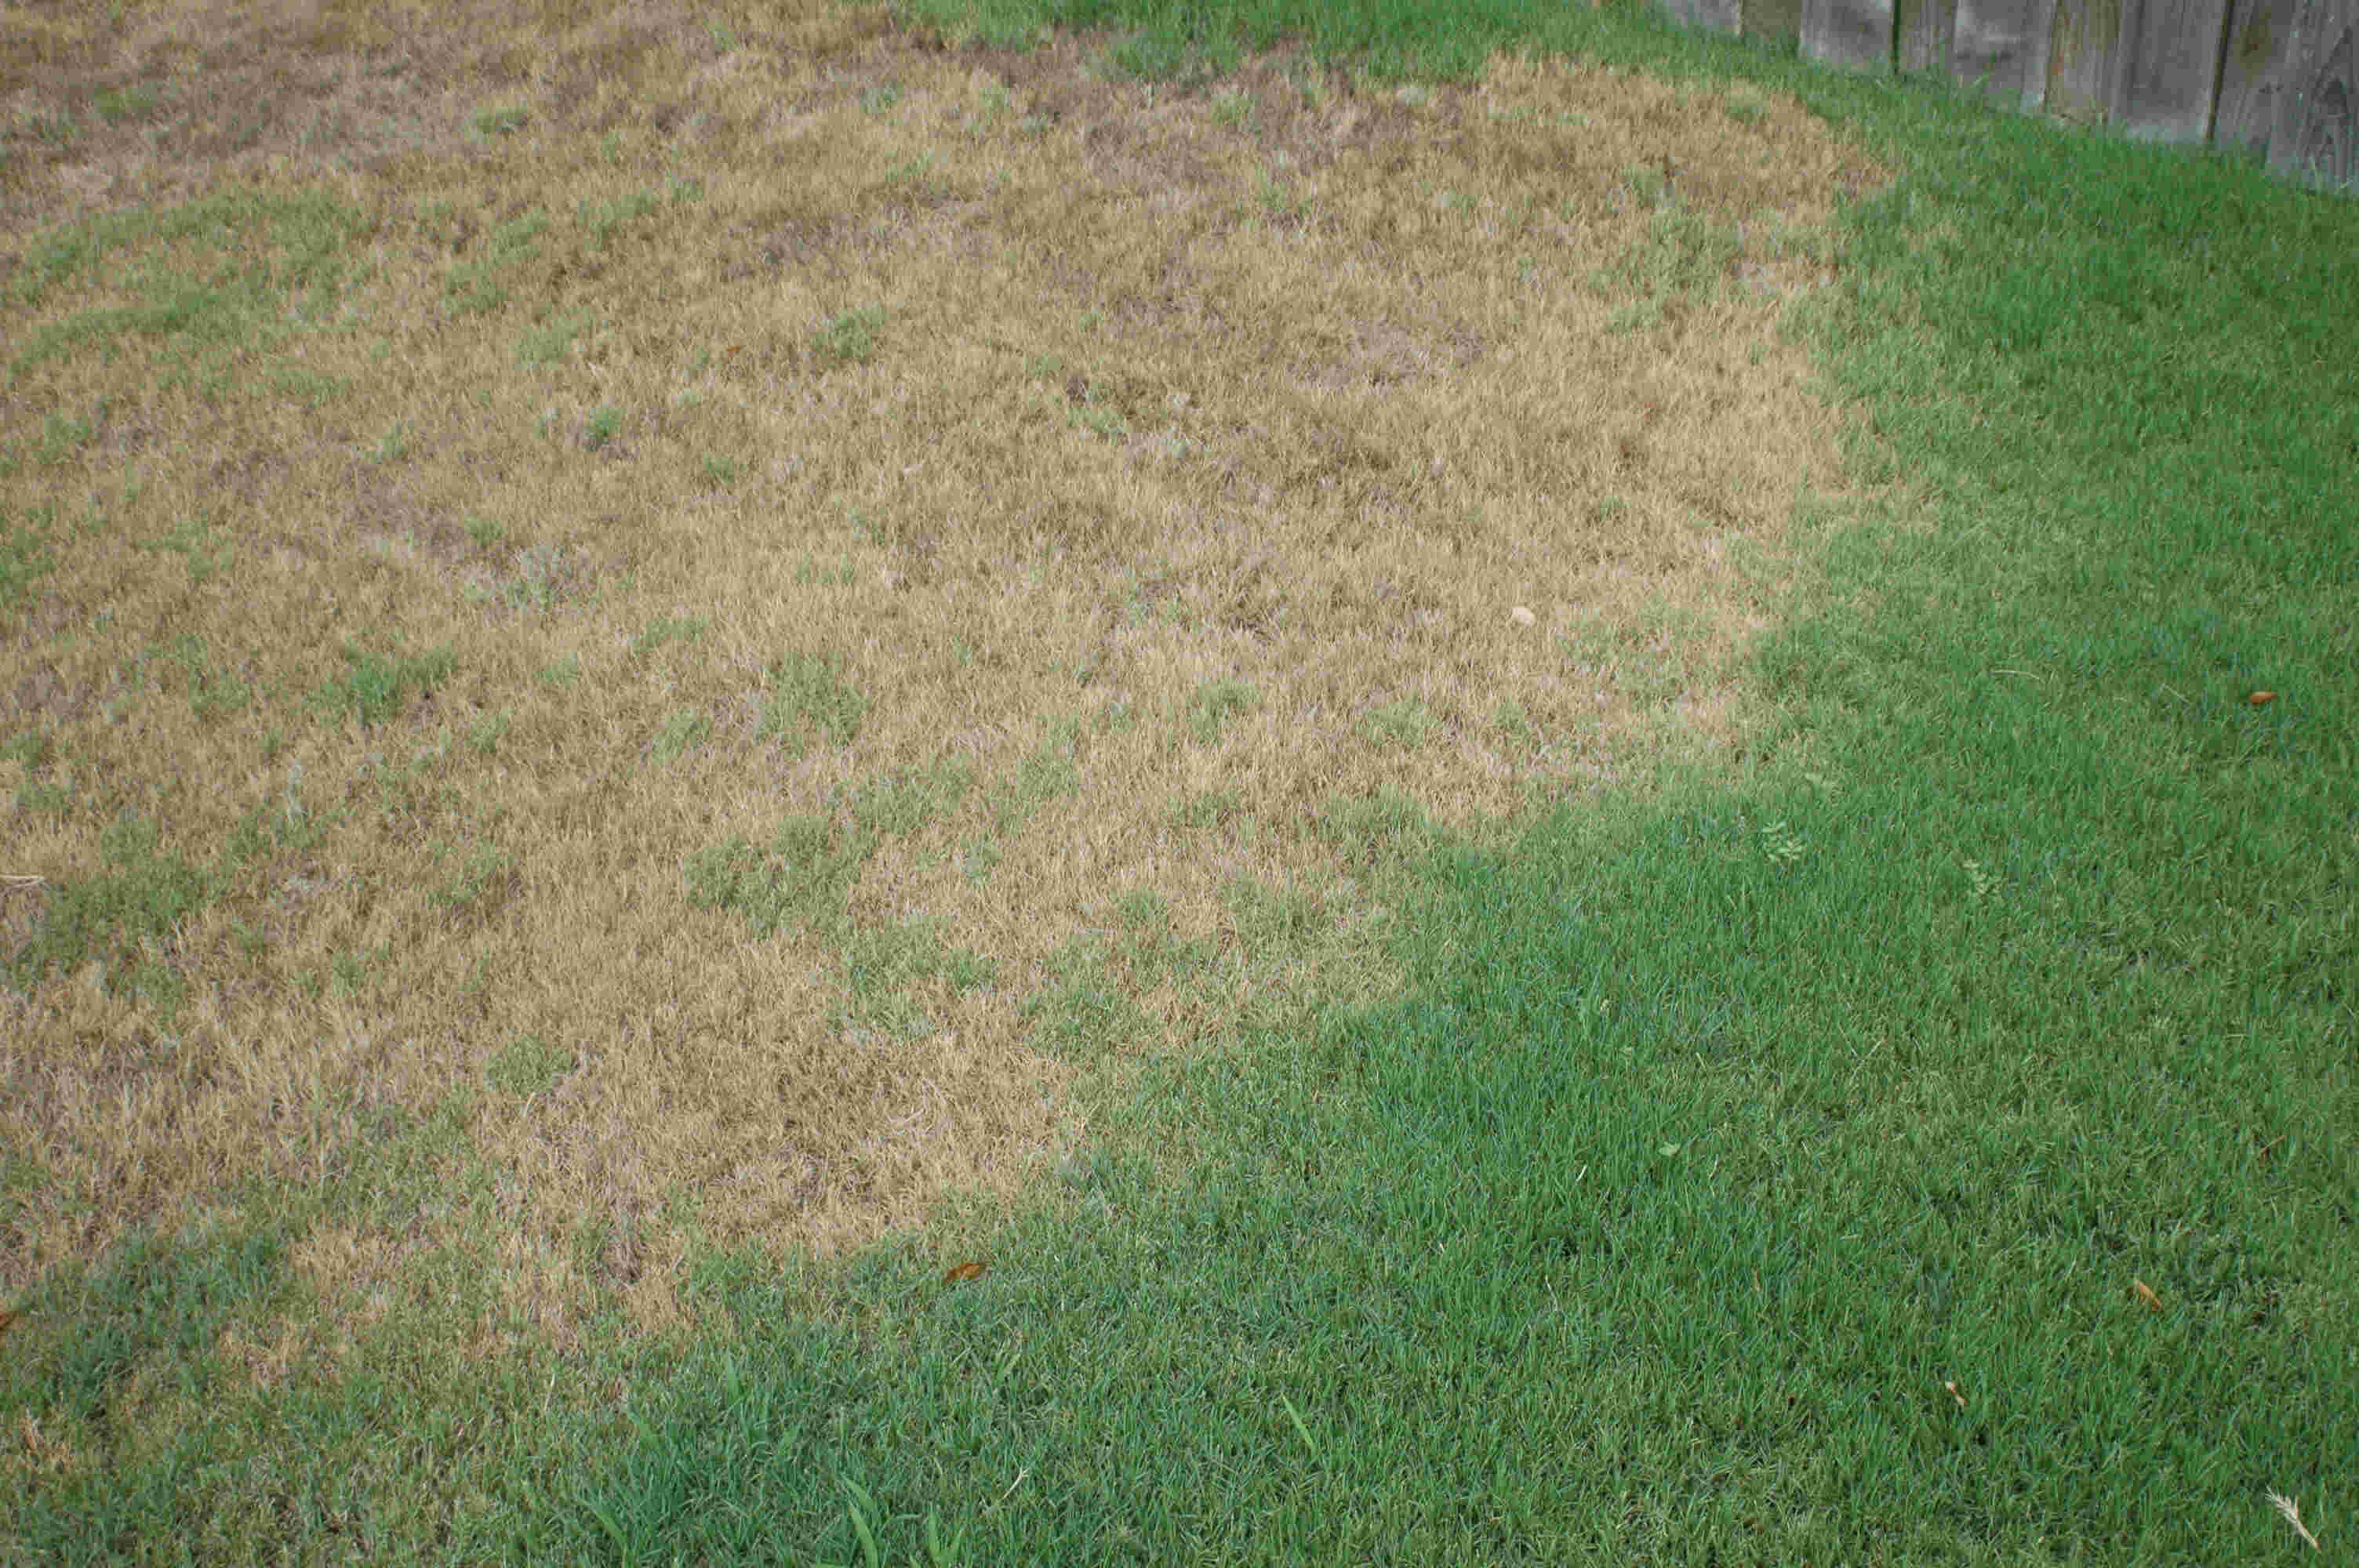 Typical symptoms of chinch bugs. The area affected will often look like grass affected by drought.